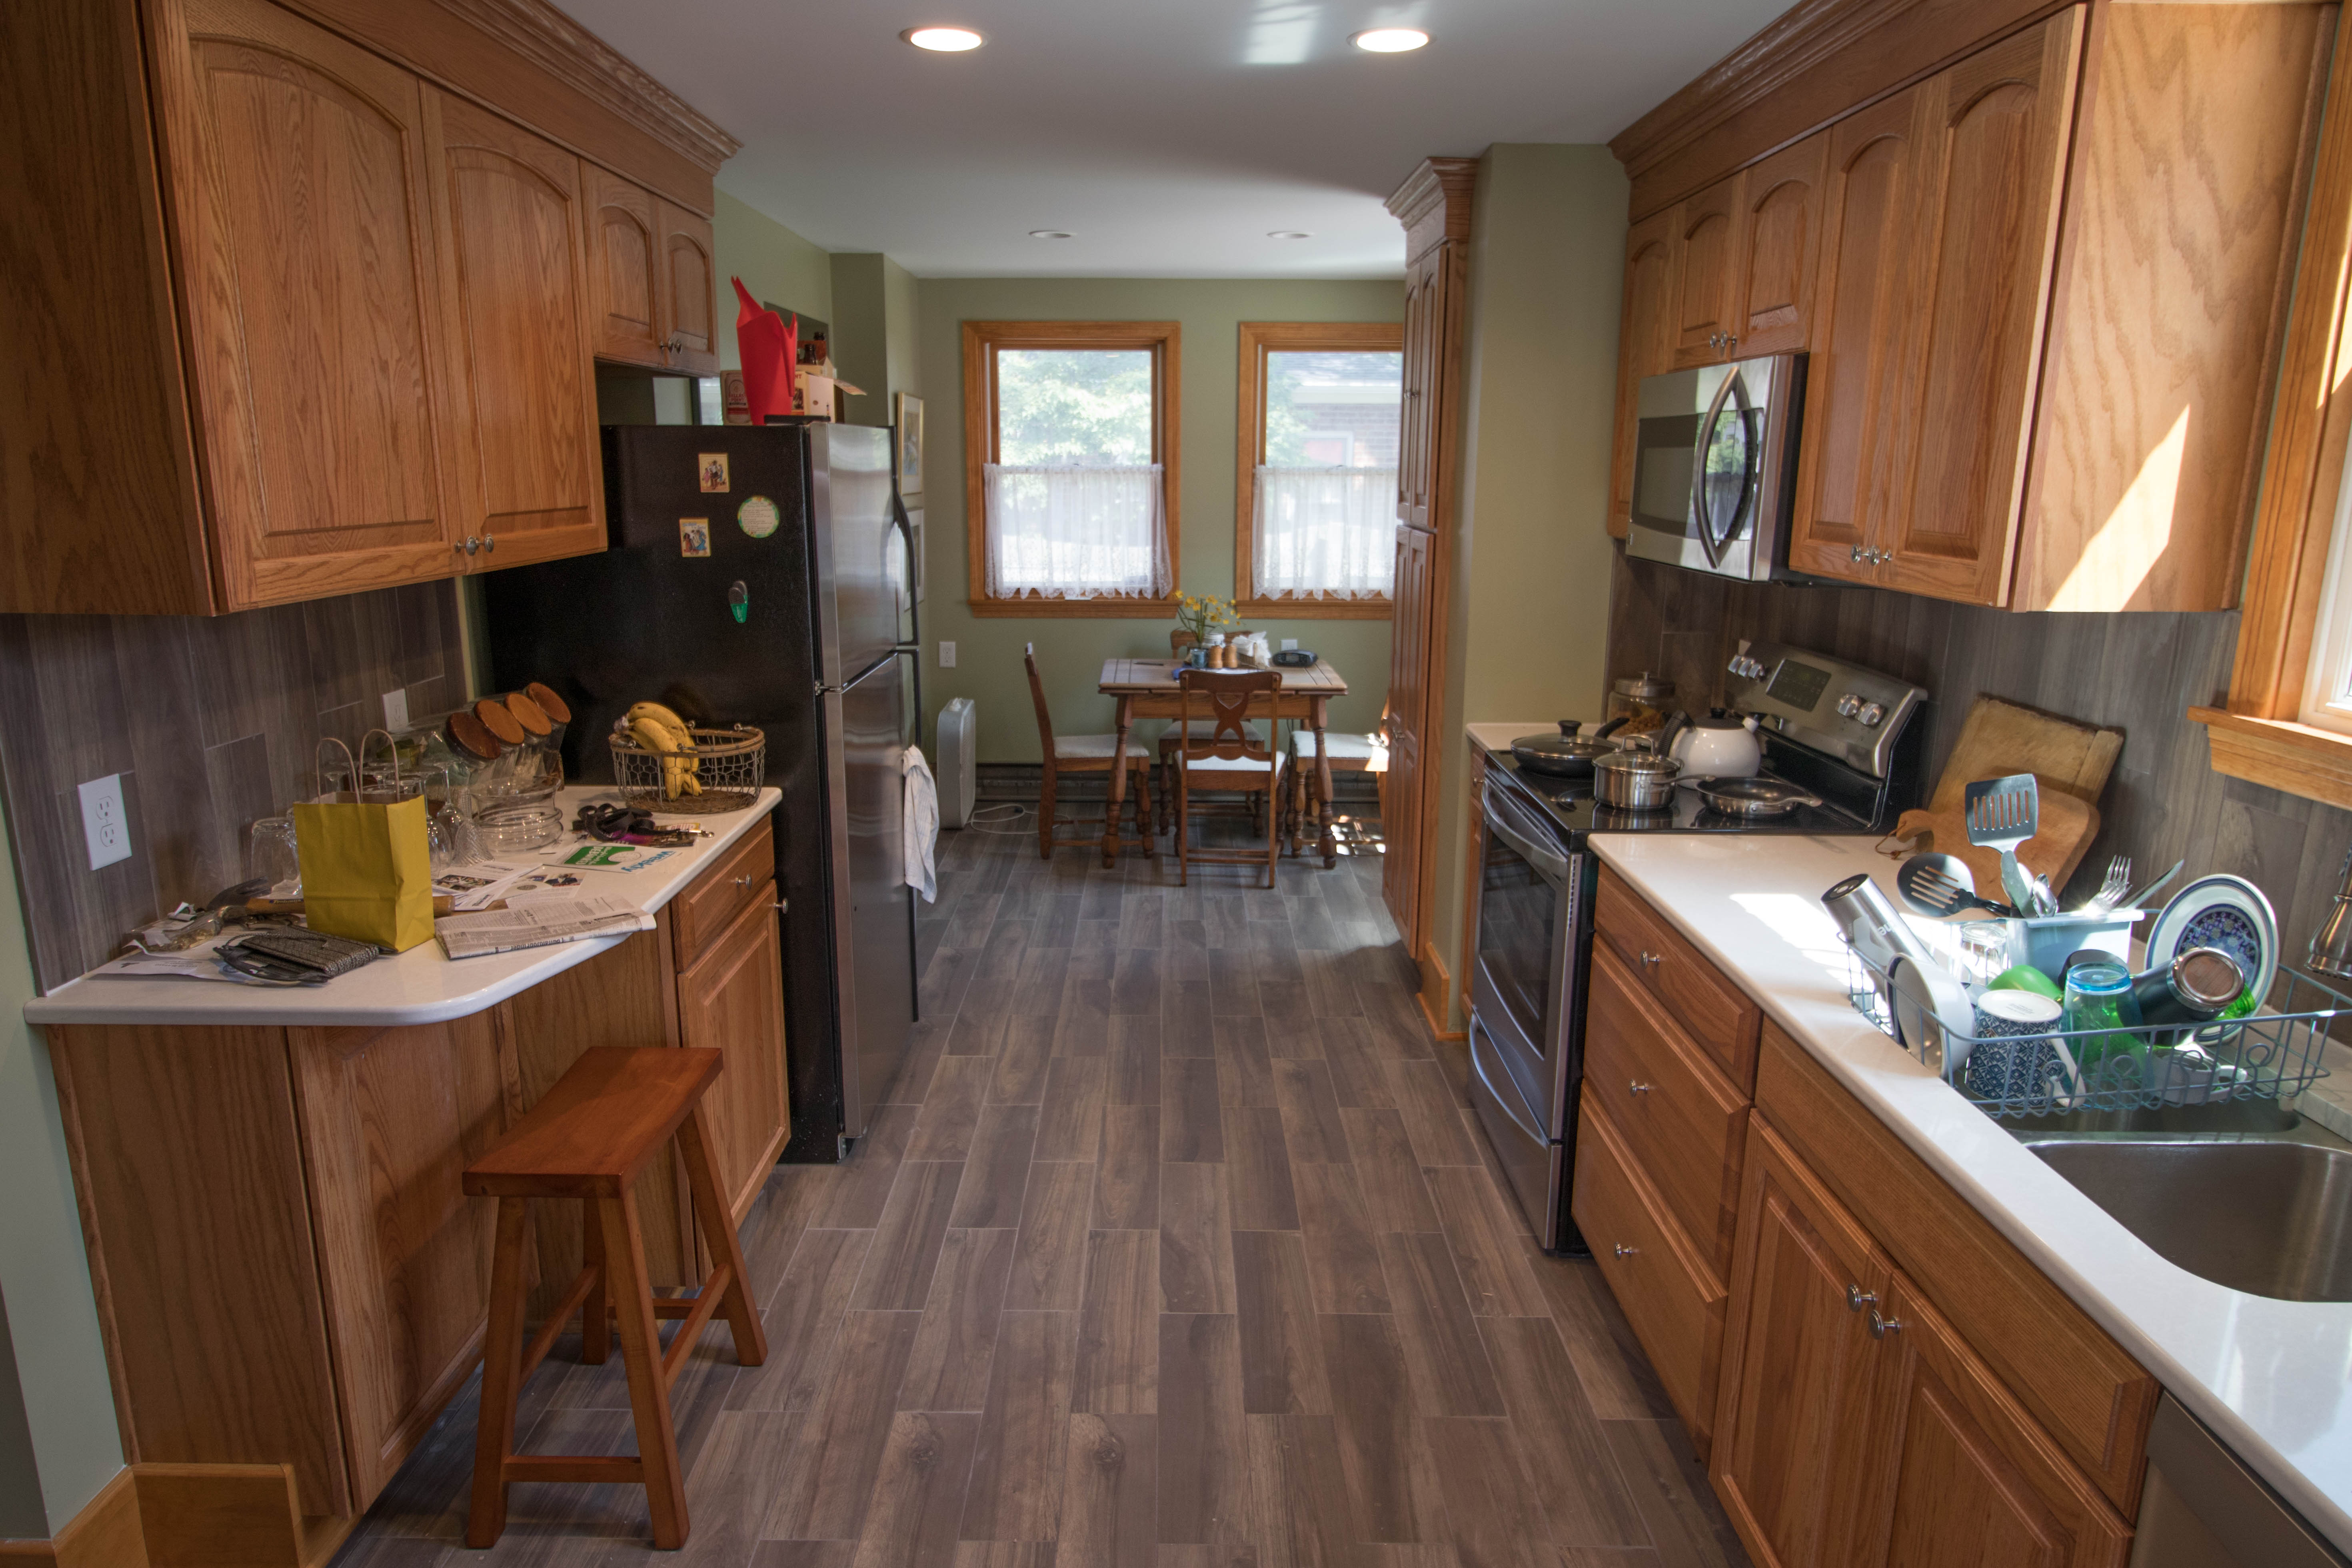 Kitchen Remodeling Amp General Contractors In Buffalo Ny Ivy Lea Construction